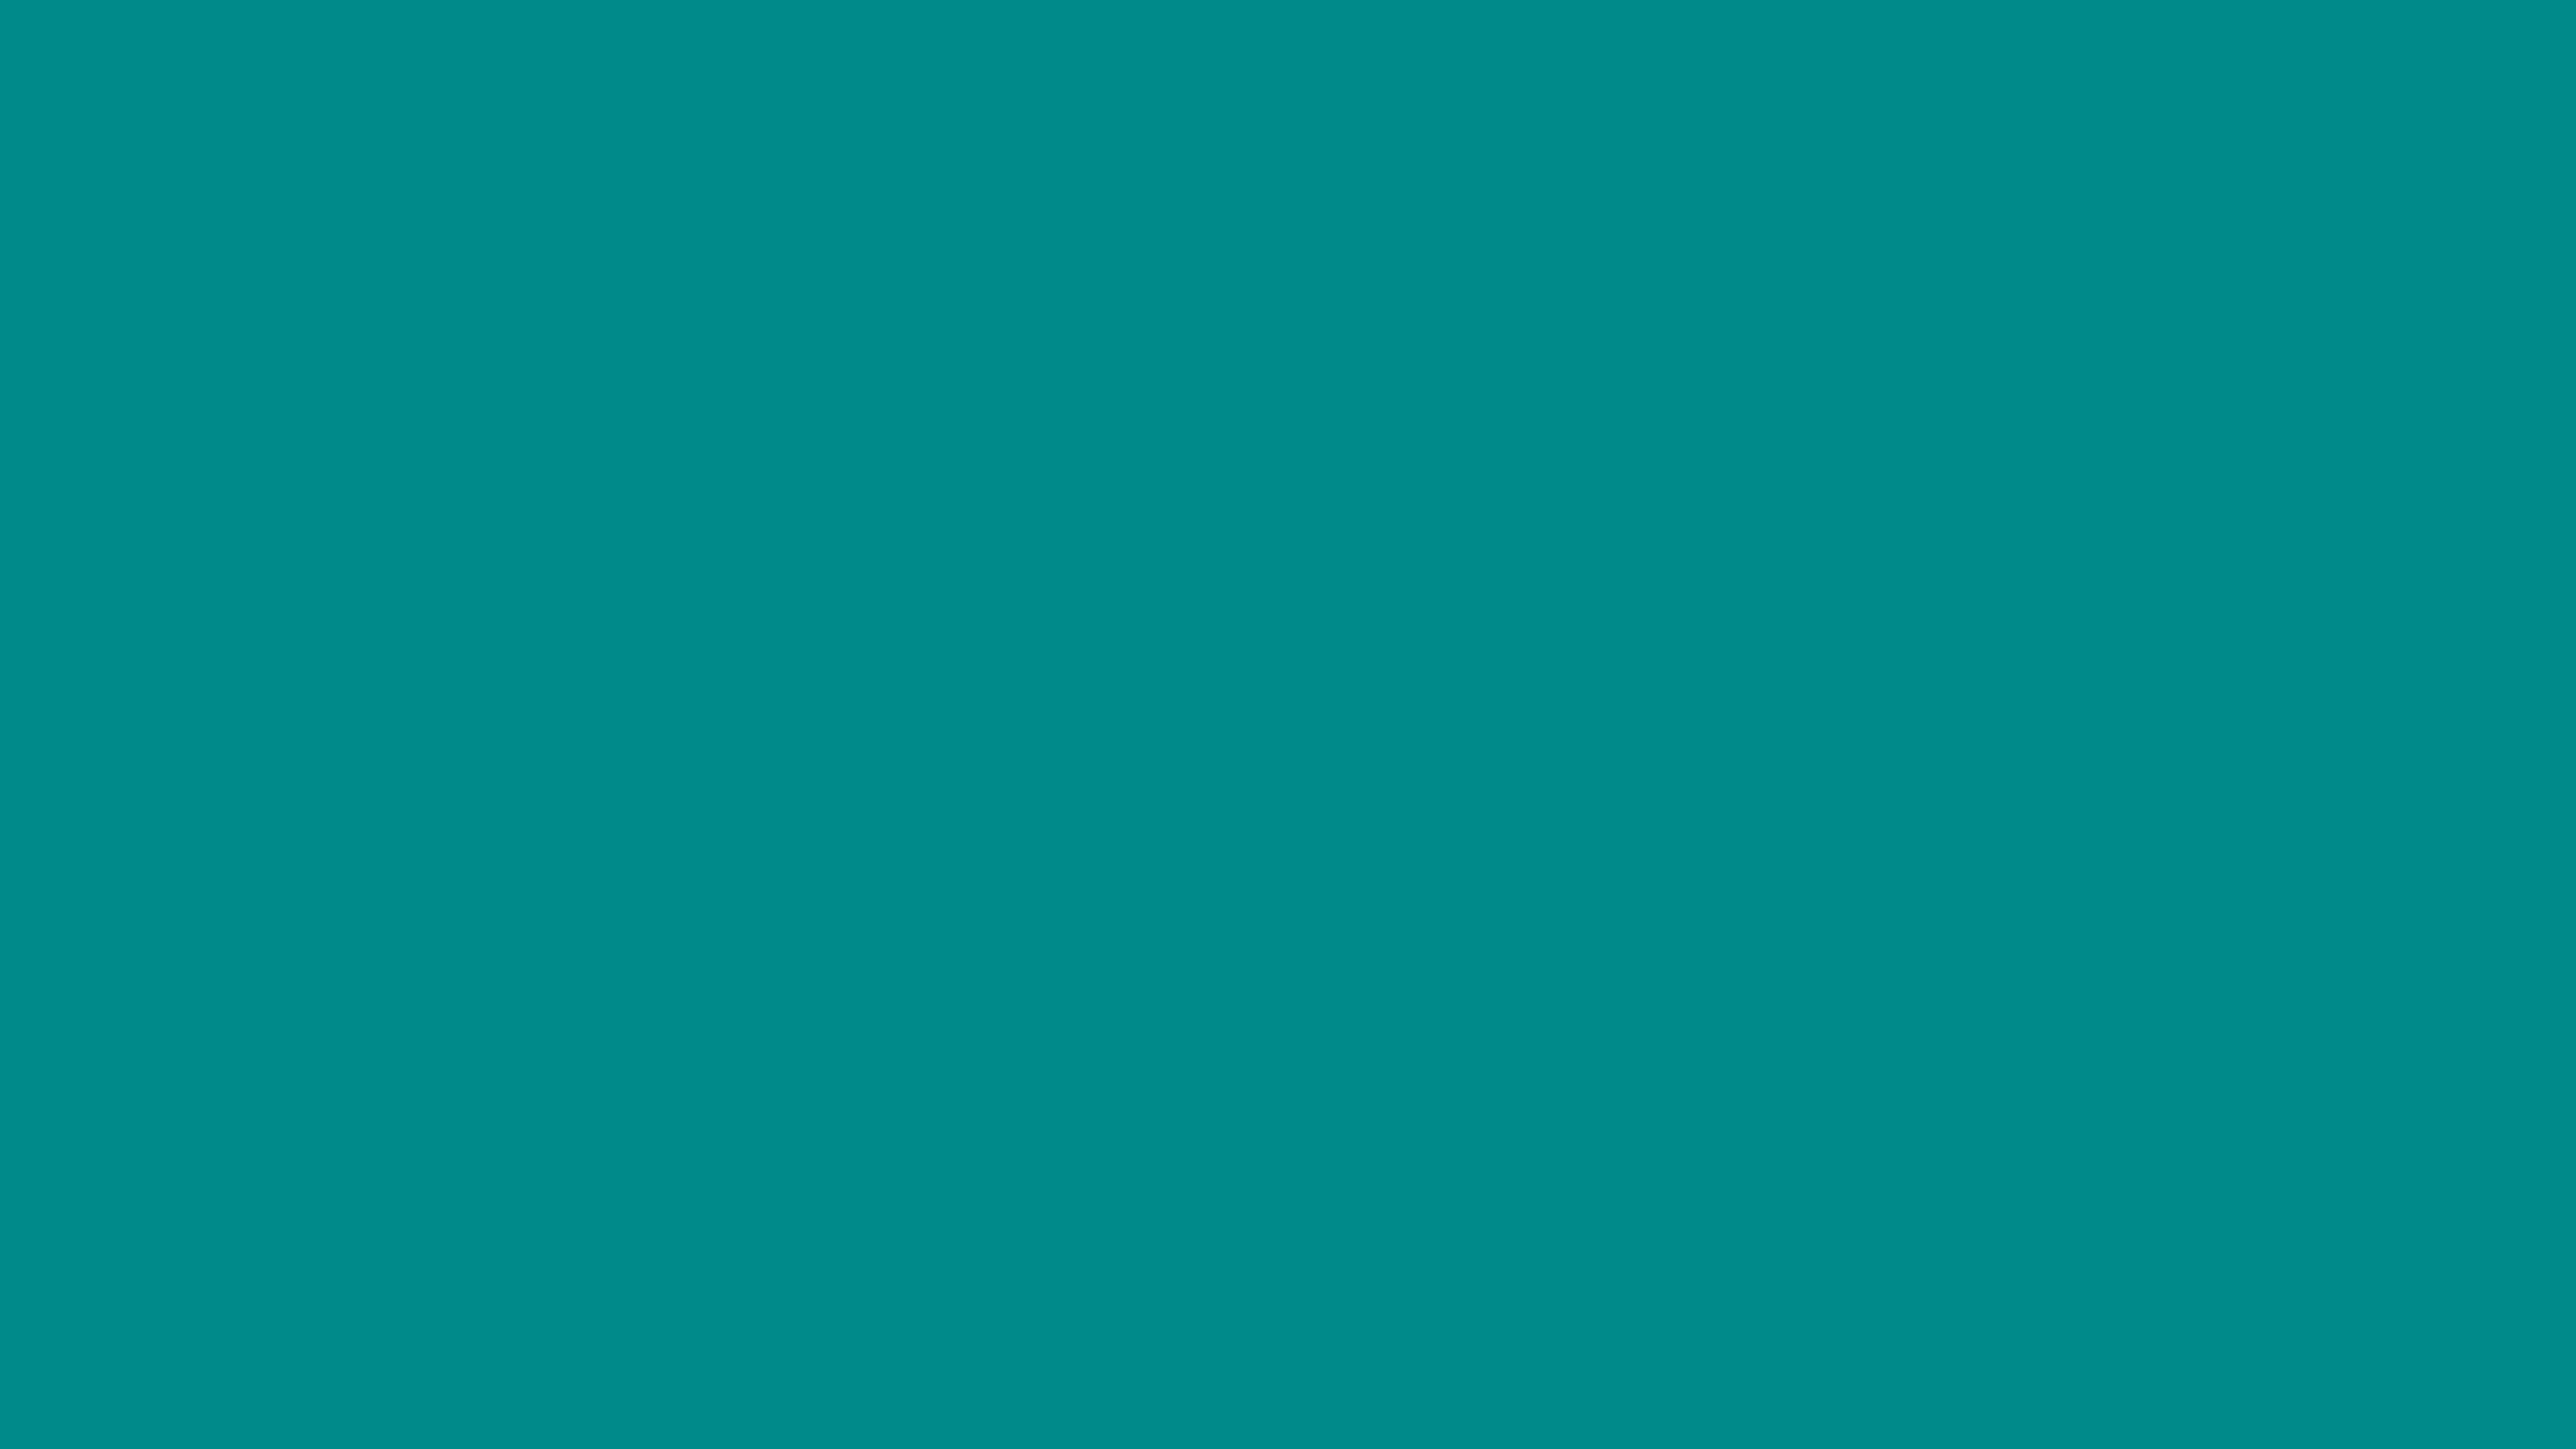 7680x4320 Dark Cyan Solid Color Background